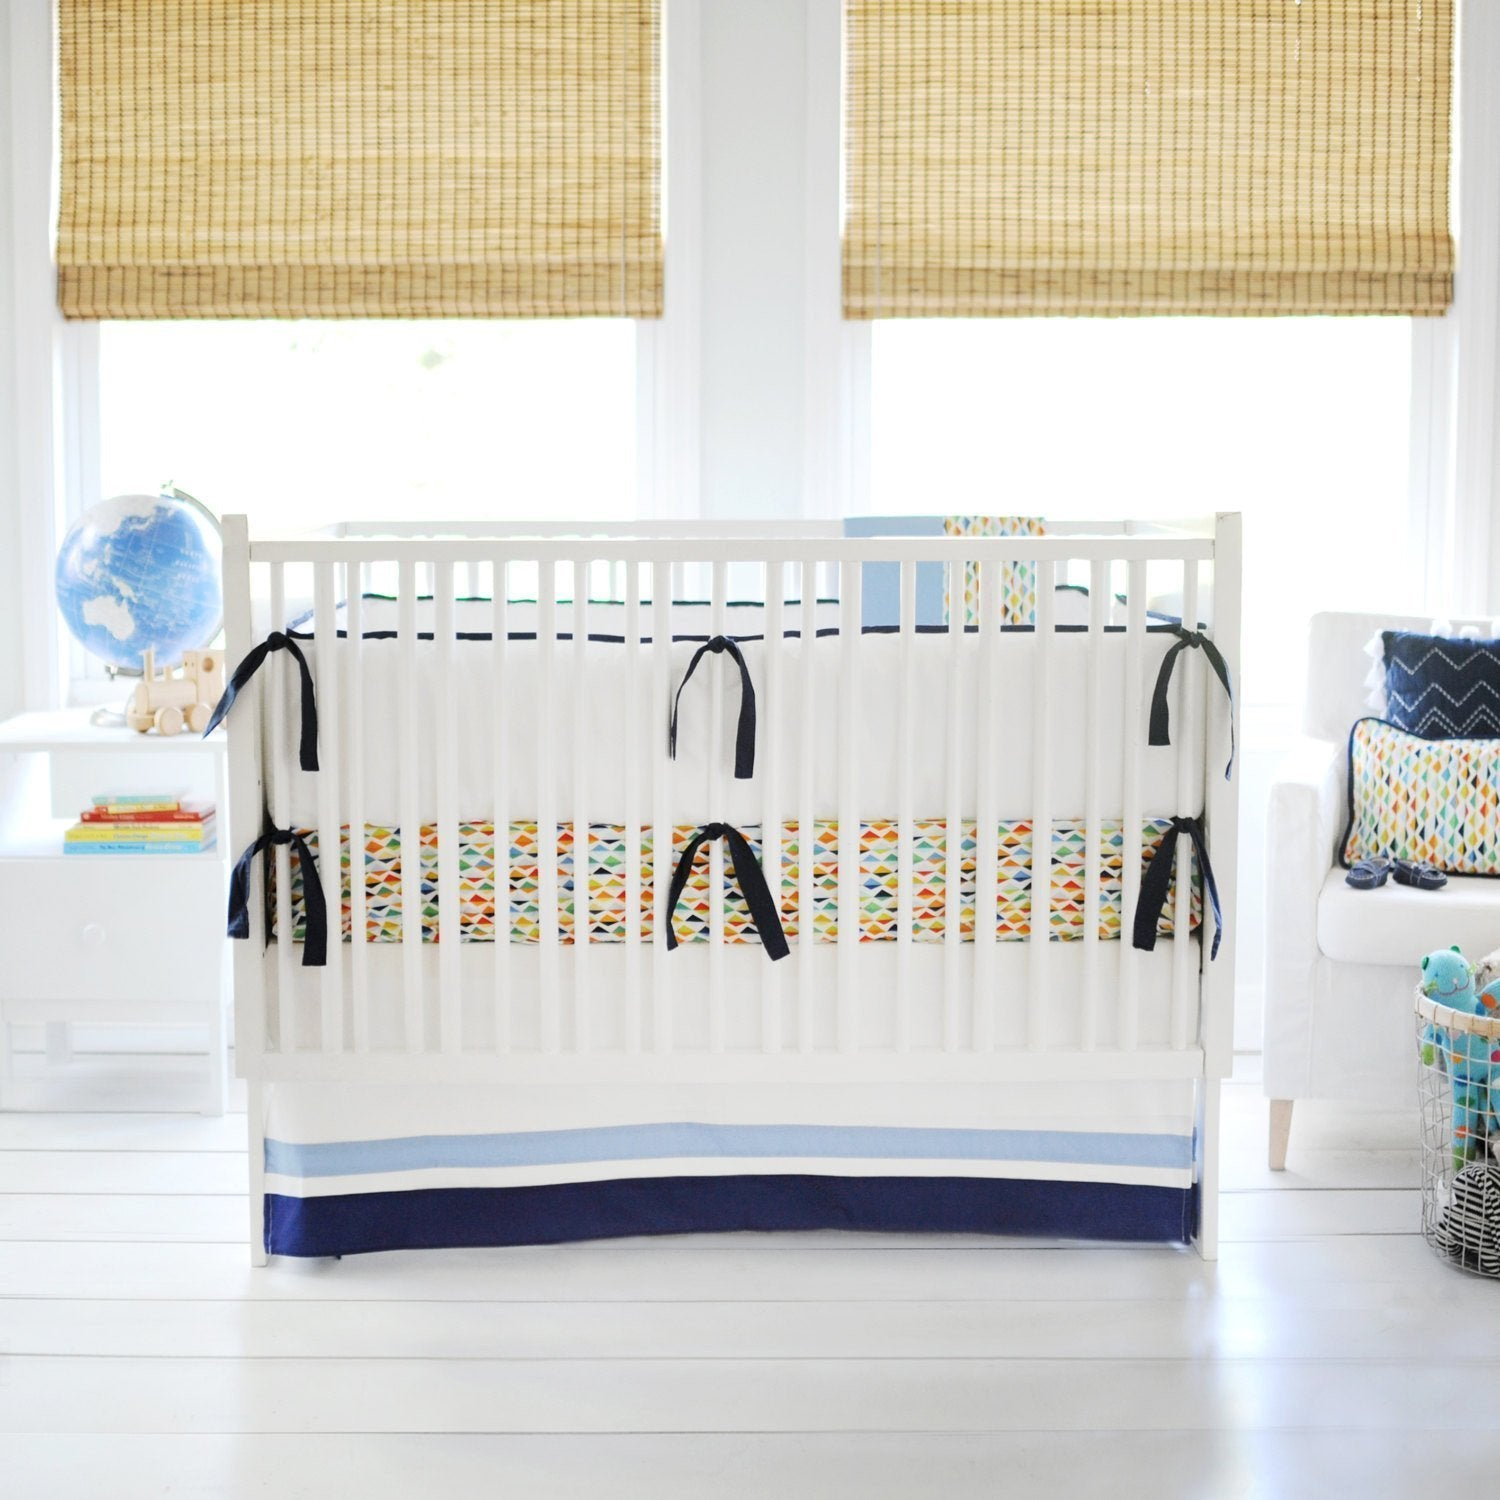 Rhapsody in Blue Baby Bedding Set-Crib Bedding Set-New Arrivals-Jack and Jill Boutique